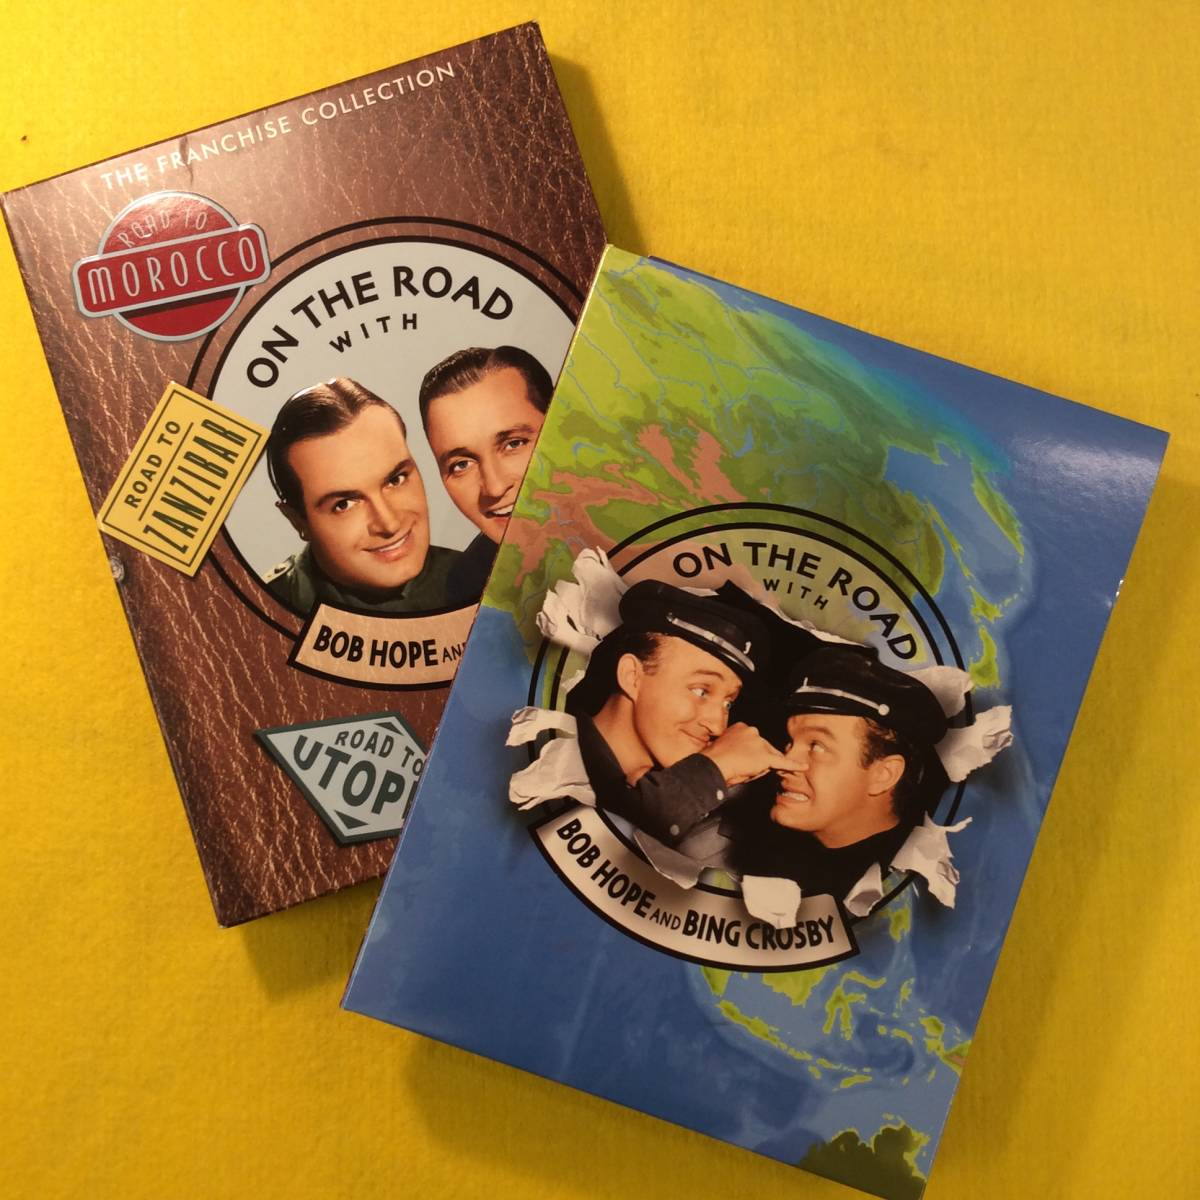 【DVD】珍道中シリーズ★ON THE ROAD with BOB HOPE and BING CROSBY★輸入盤・リージョン1★ボブ・ホープ/ビング・クロスビー★映画_画像4